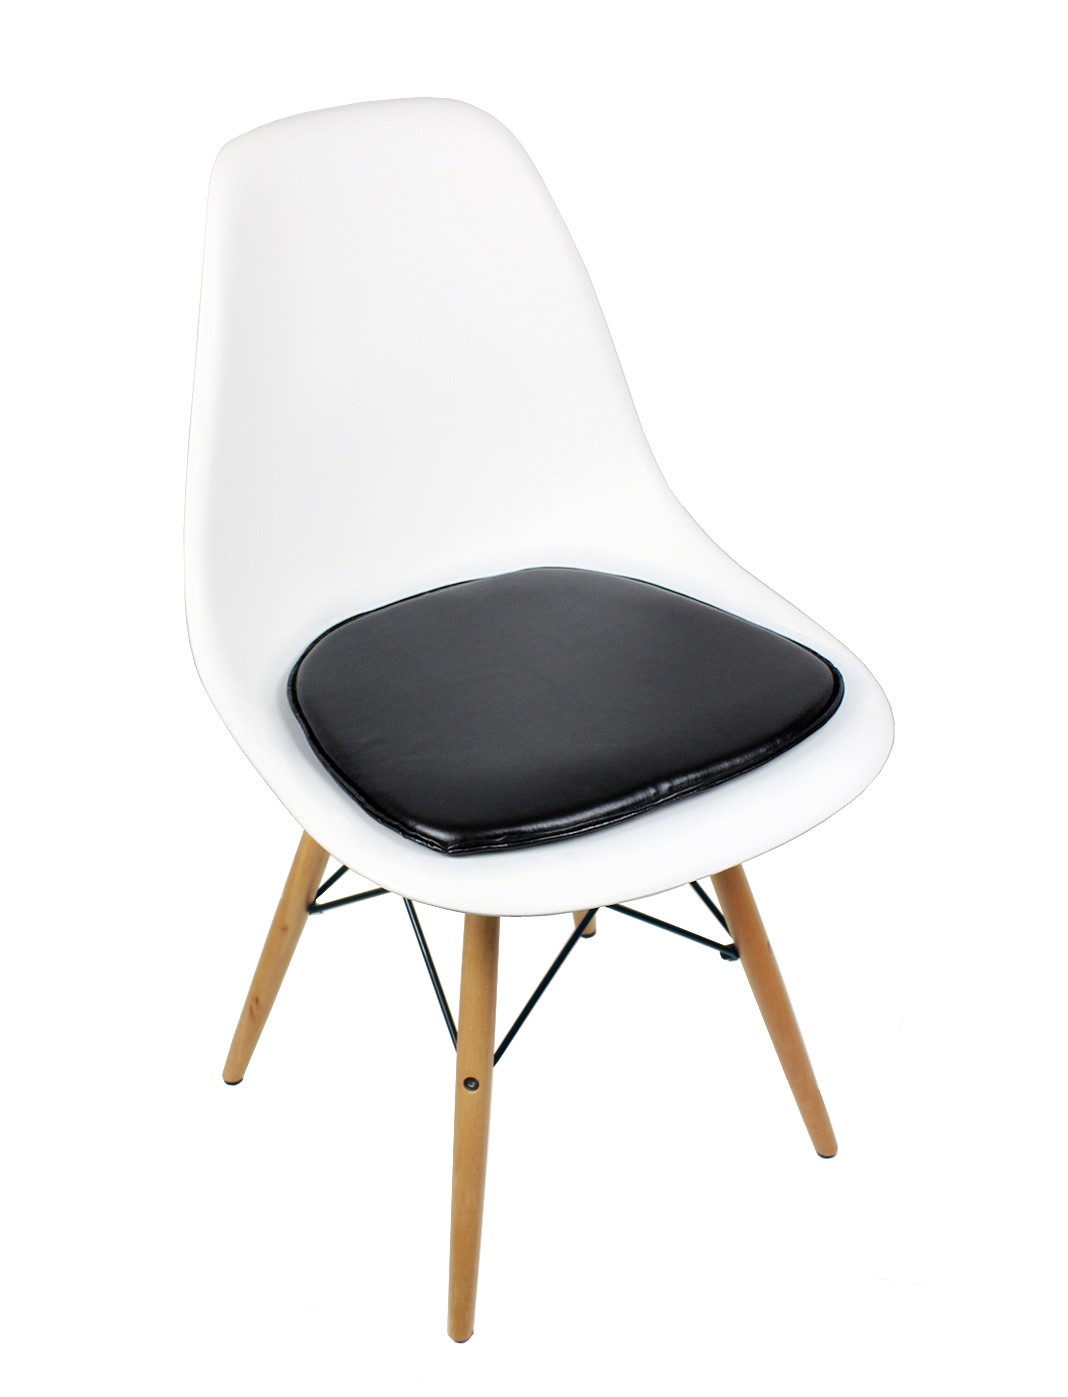 Eames Style DSW Molded White Plastic Dining Shell Chair  : eames dsw white black cushion 1p1 from www.emoderndecor.com size 1068 x 1397 jpeg 84kB